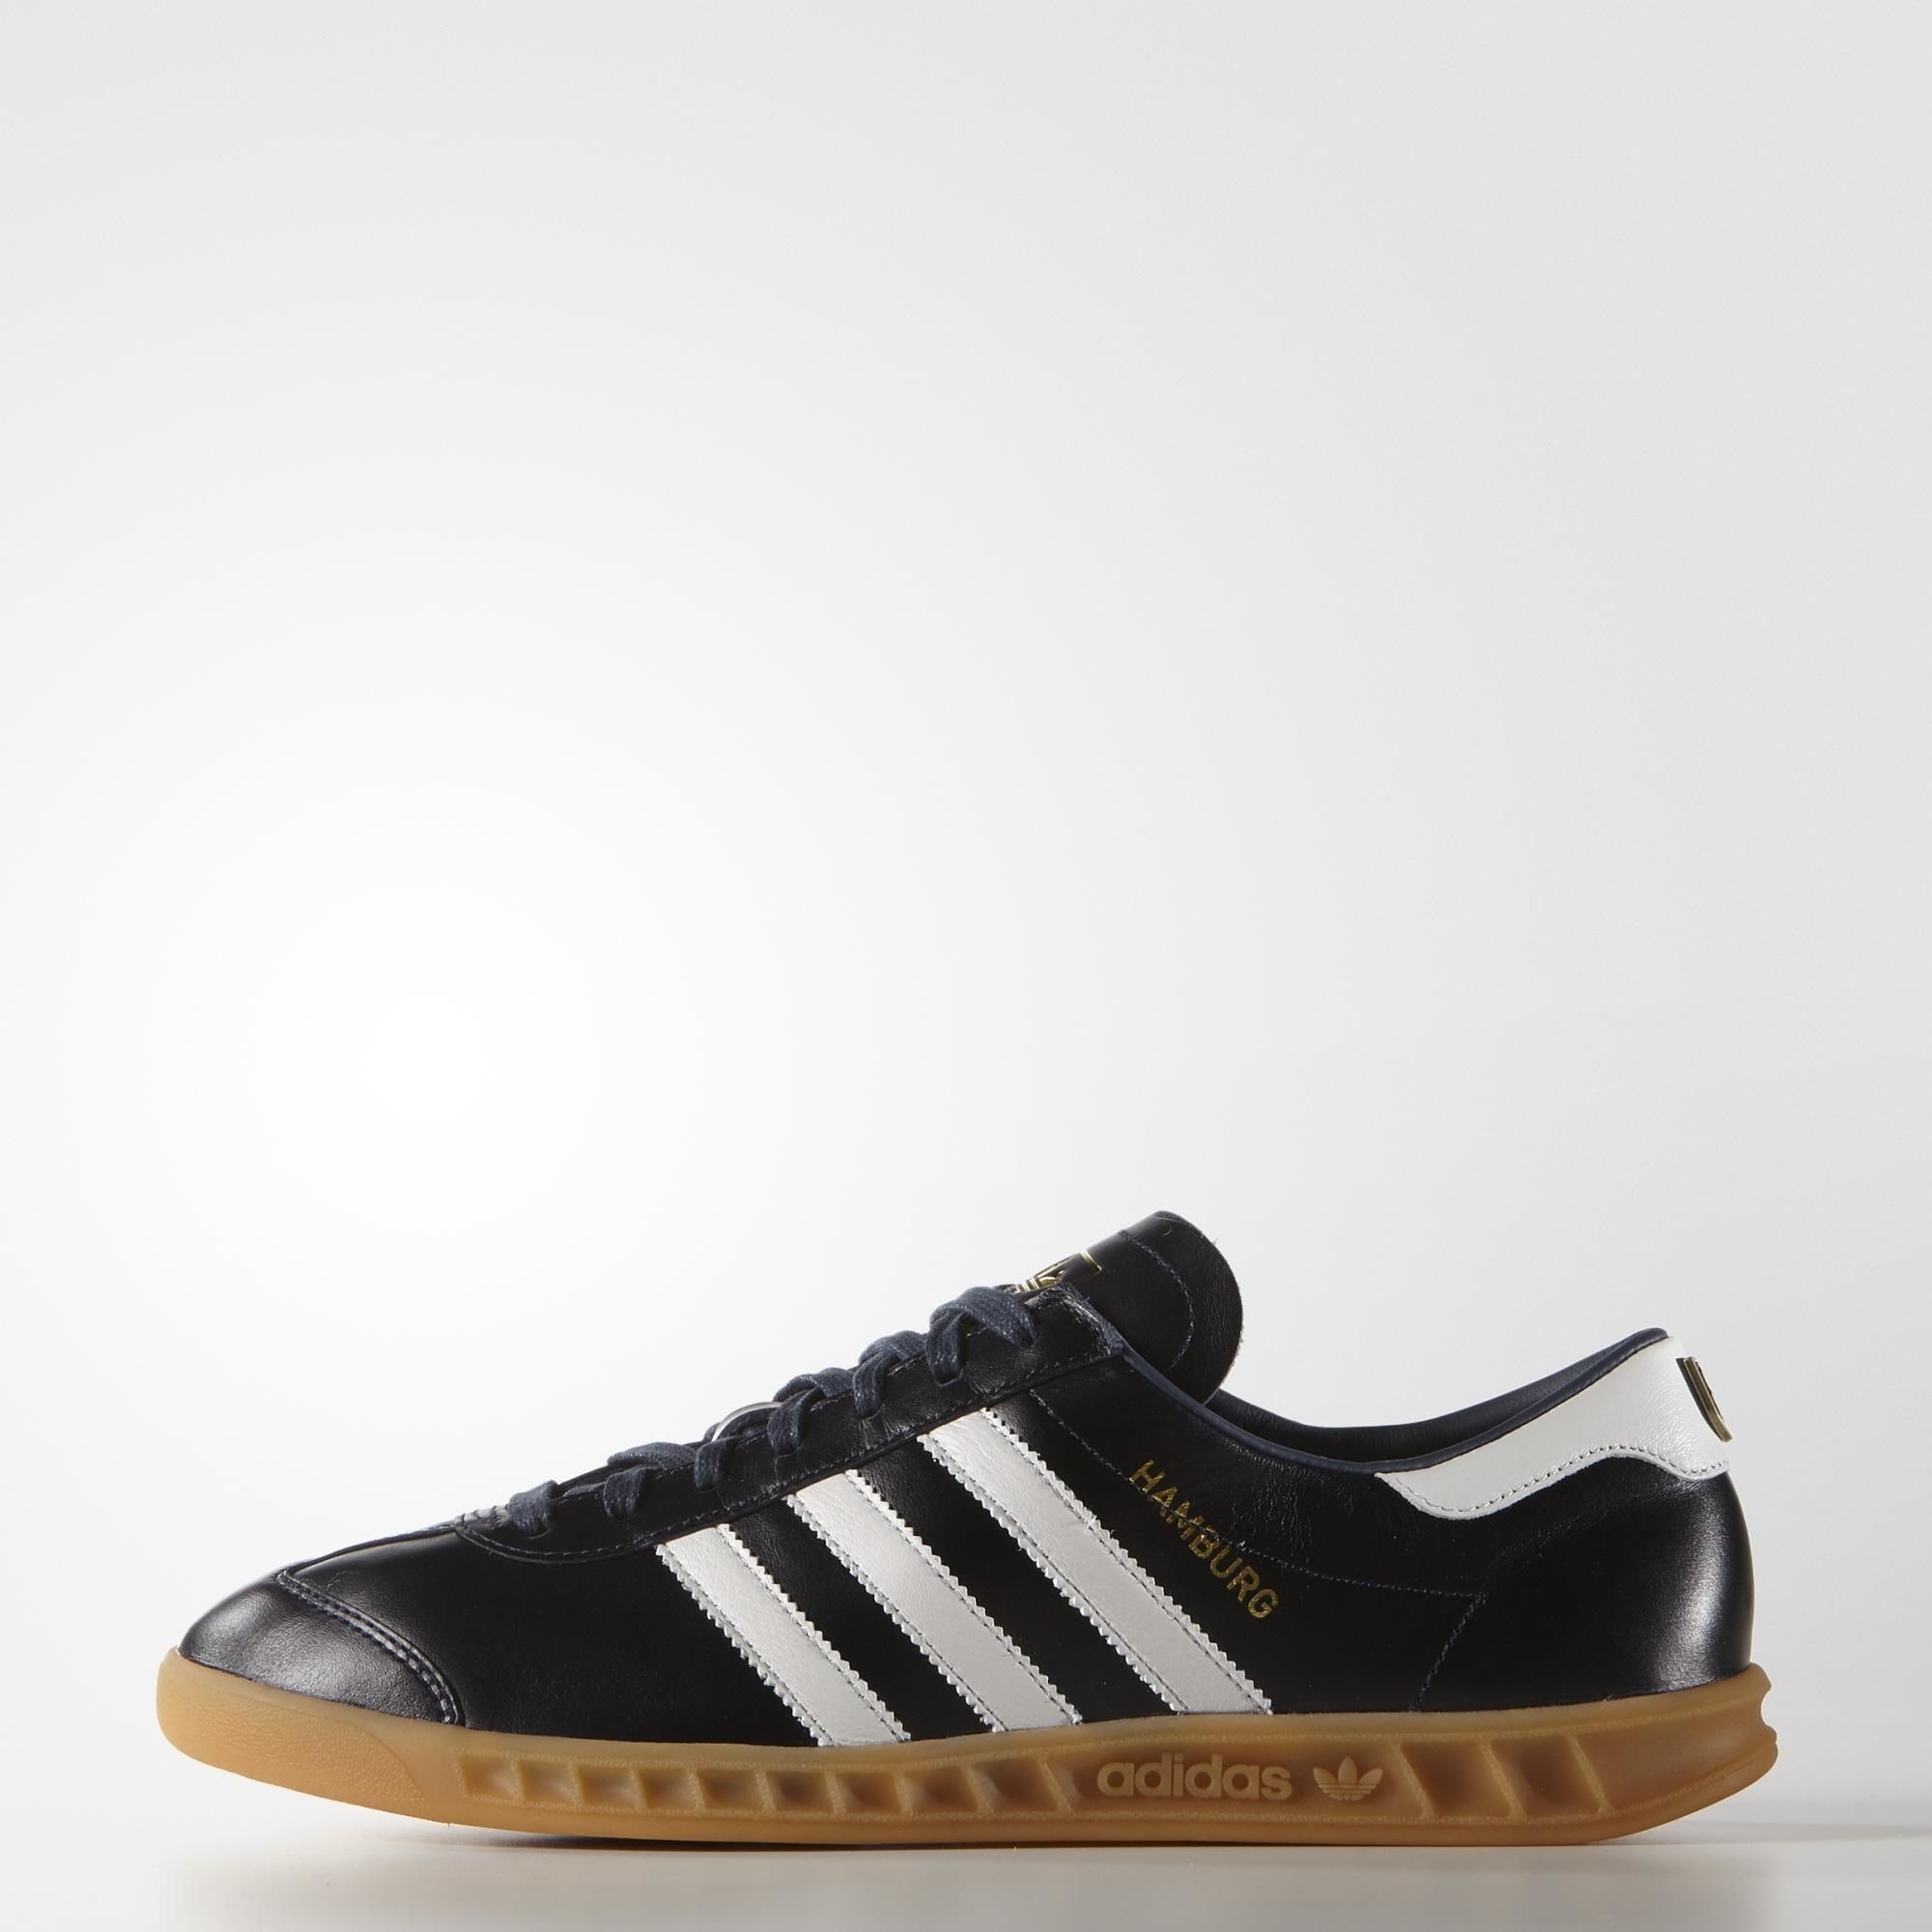 adidas hamburg made in germany shoes blue adidas us christmas list pinterest adidas. Black Bedroom Furniture Sets. Home Design Ideas